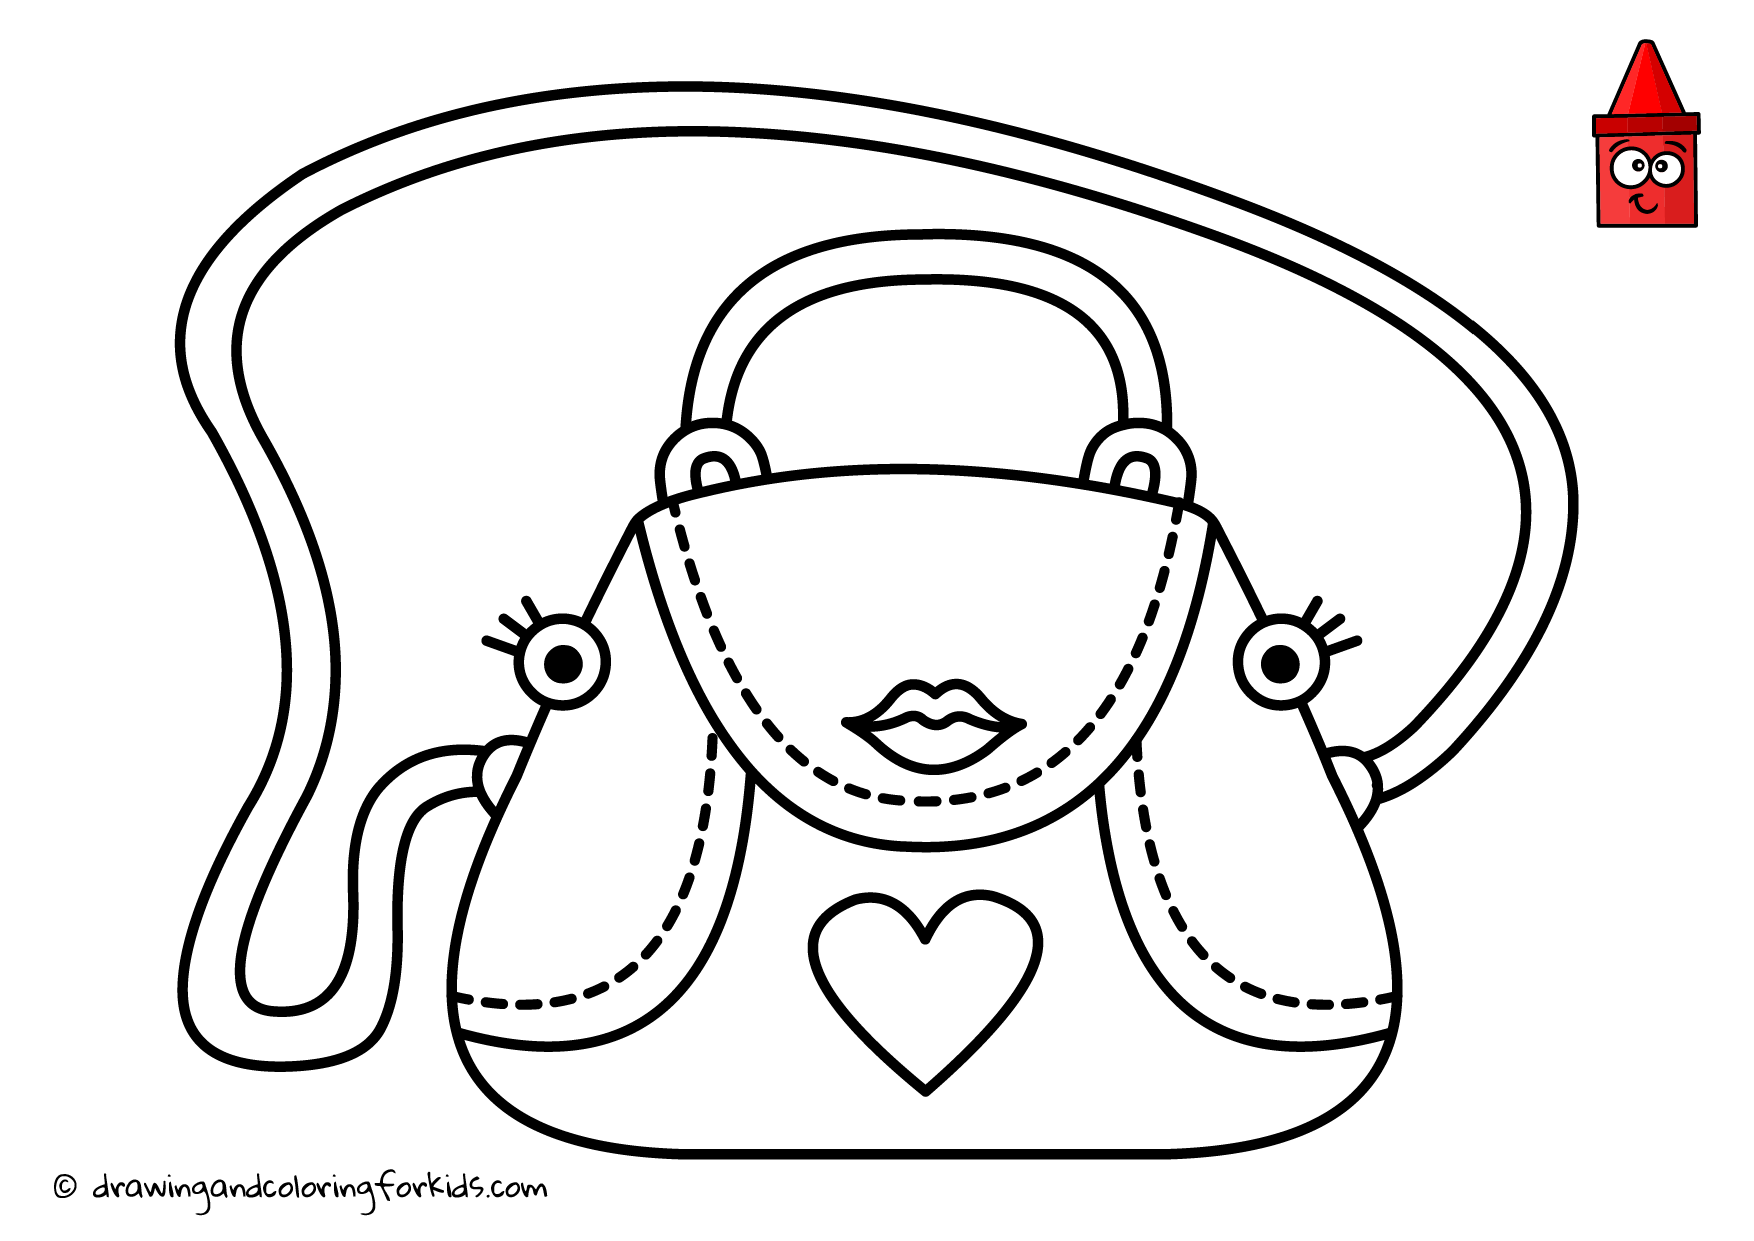 Drawing Purse Coloring Purse Handbag Drawing Coloring Page For Girls Coloring Pages Coloring Pages For Girls Coloring Pages For Kids